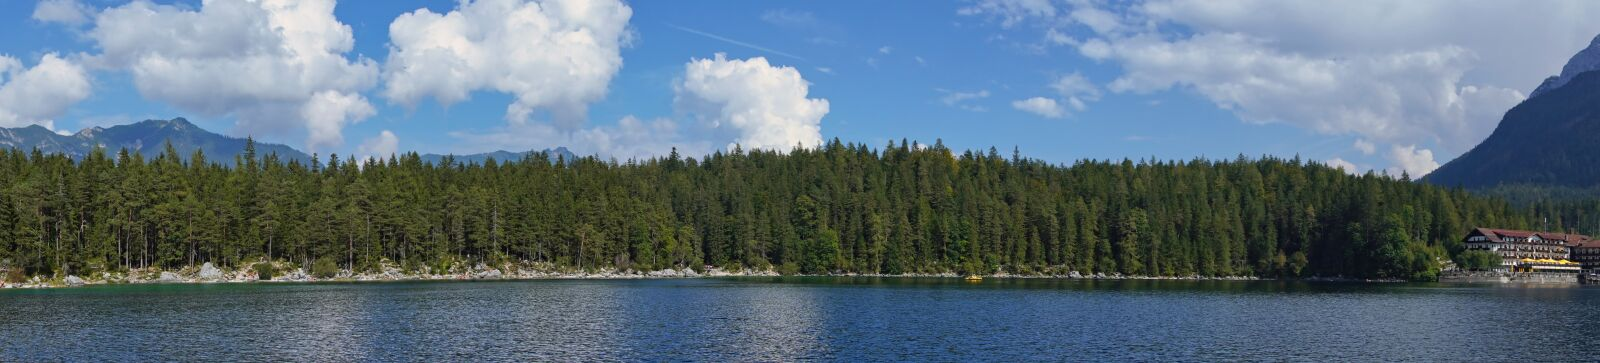 """Sony a6400 sample photo. """"Eibsee, panorama, forest"""" photography"""